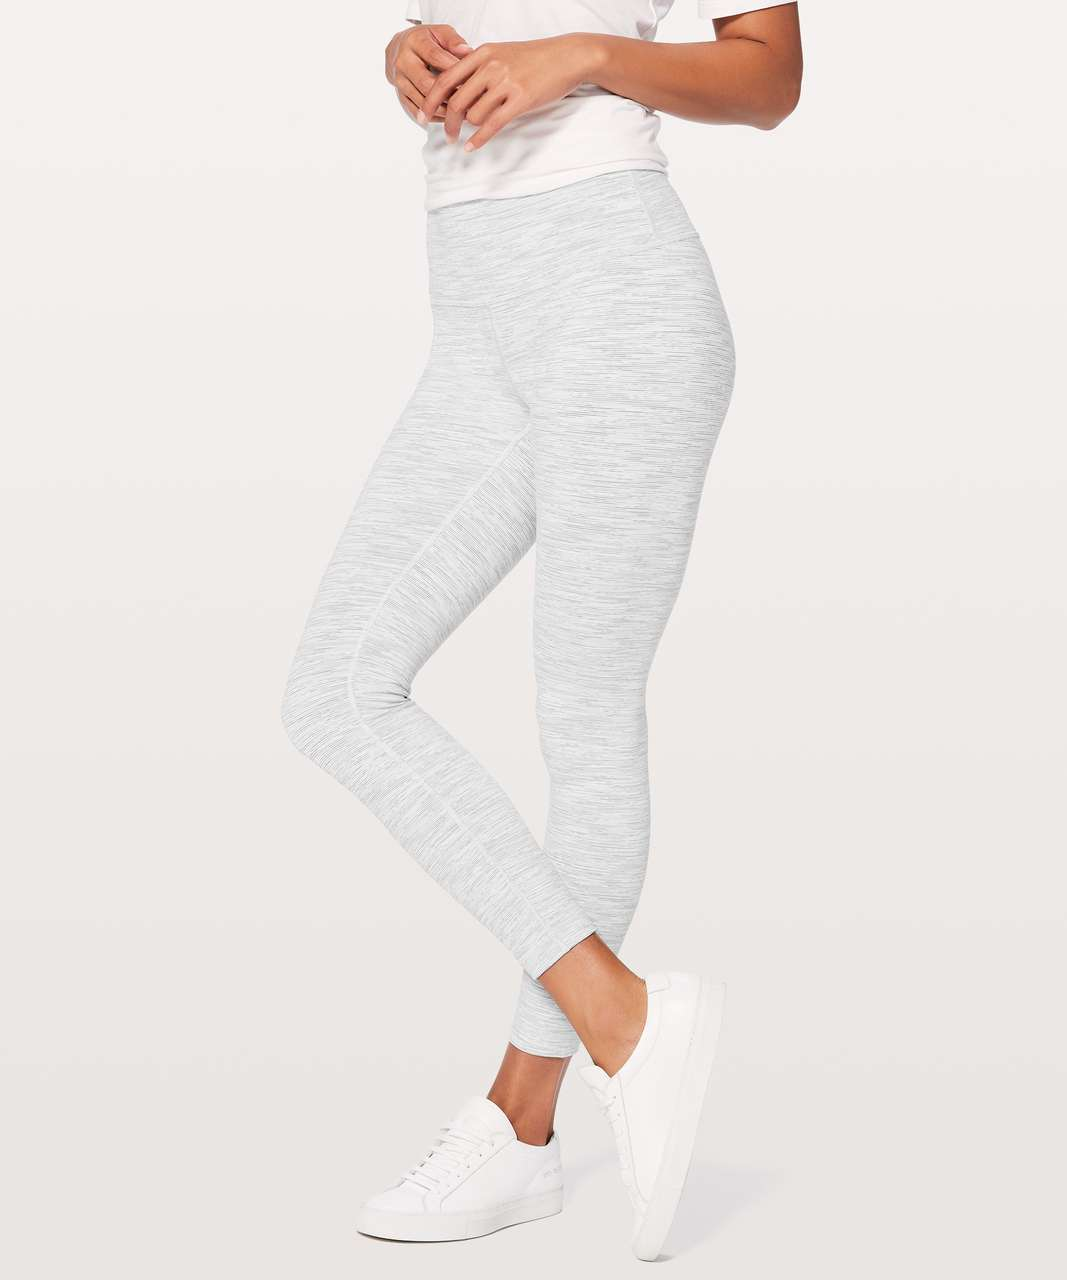 "Lululemon Wunder Under Hi-Rise 7/8 Tight *25"" - Wee Are From Space Nimbus Battleship"